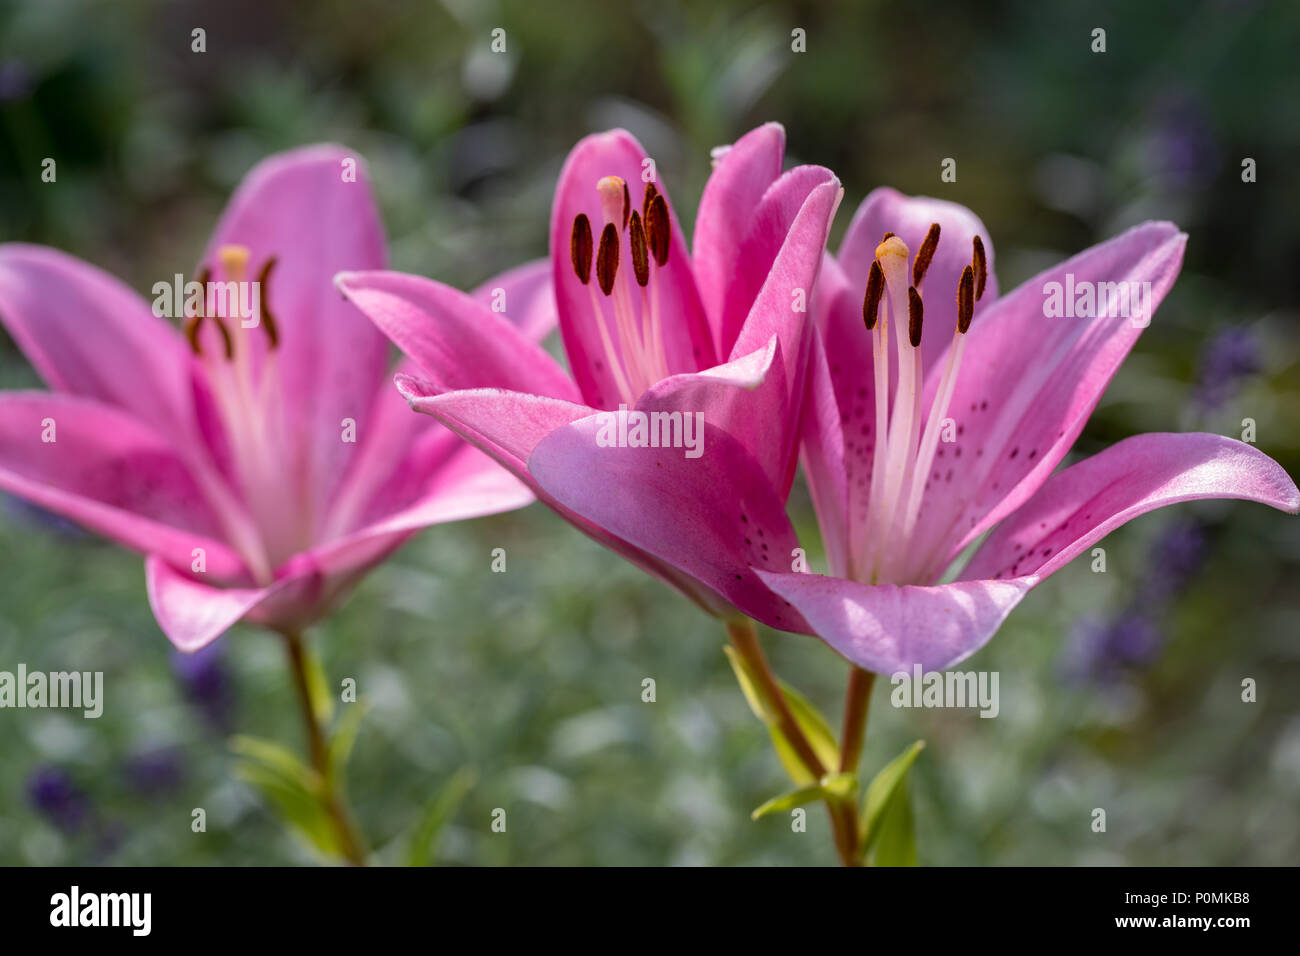 Close up of pink liles flowers common names for species in this close up of pink liles flowers common names for species in this genus include fairy lily rainflower zephyr lily magic lily atamasco lily and rain li izmirmasajfo